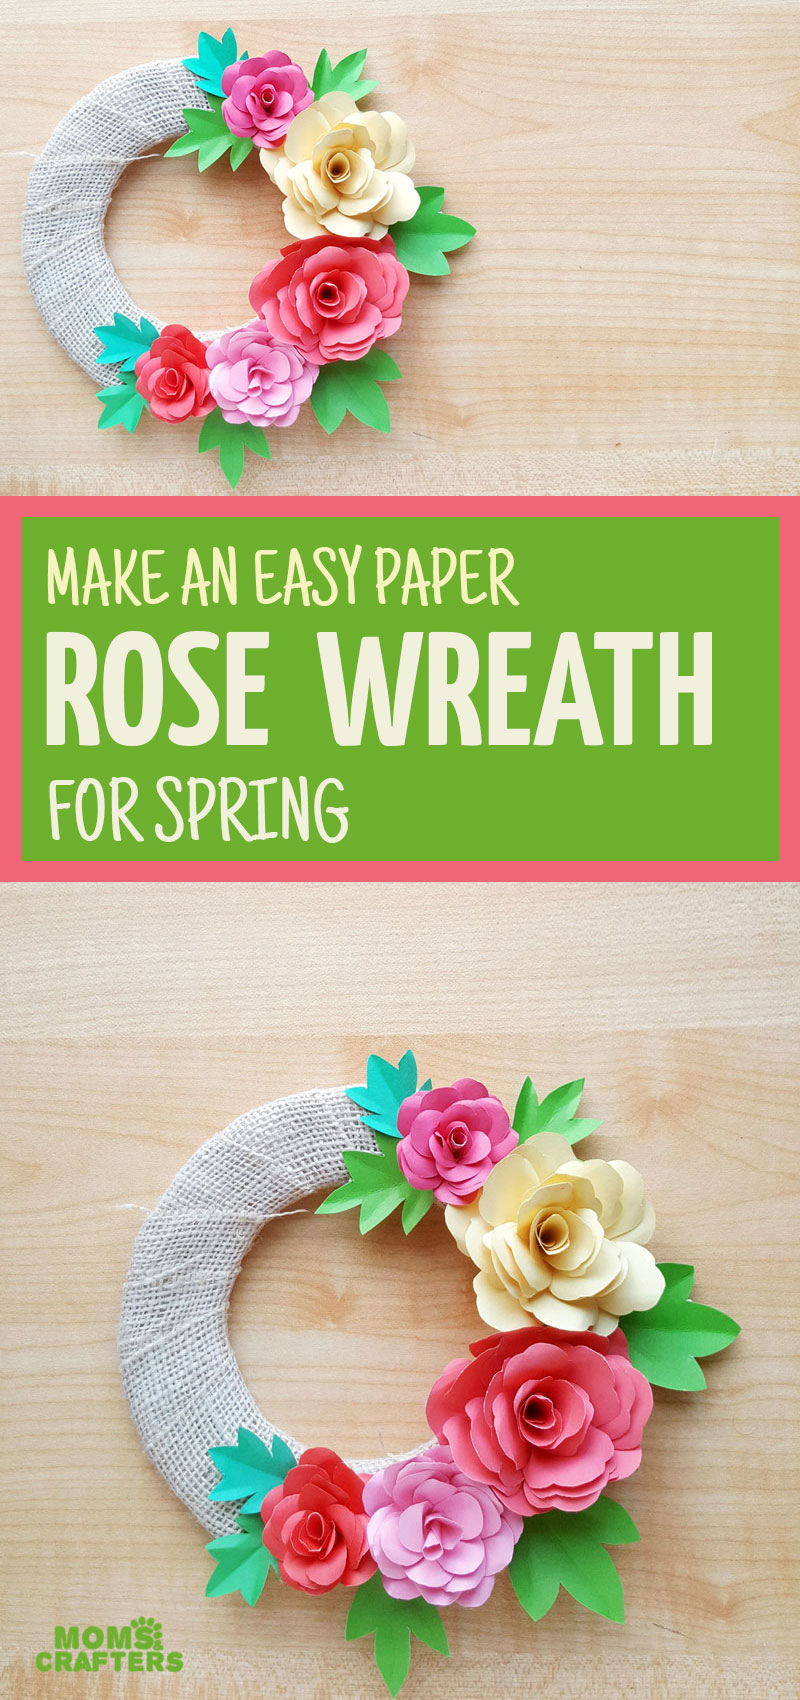 Make your own paper flower wreaths using a free printable template! These DIY paper roses are so pretty and colorful and fun for Spring!